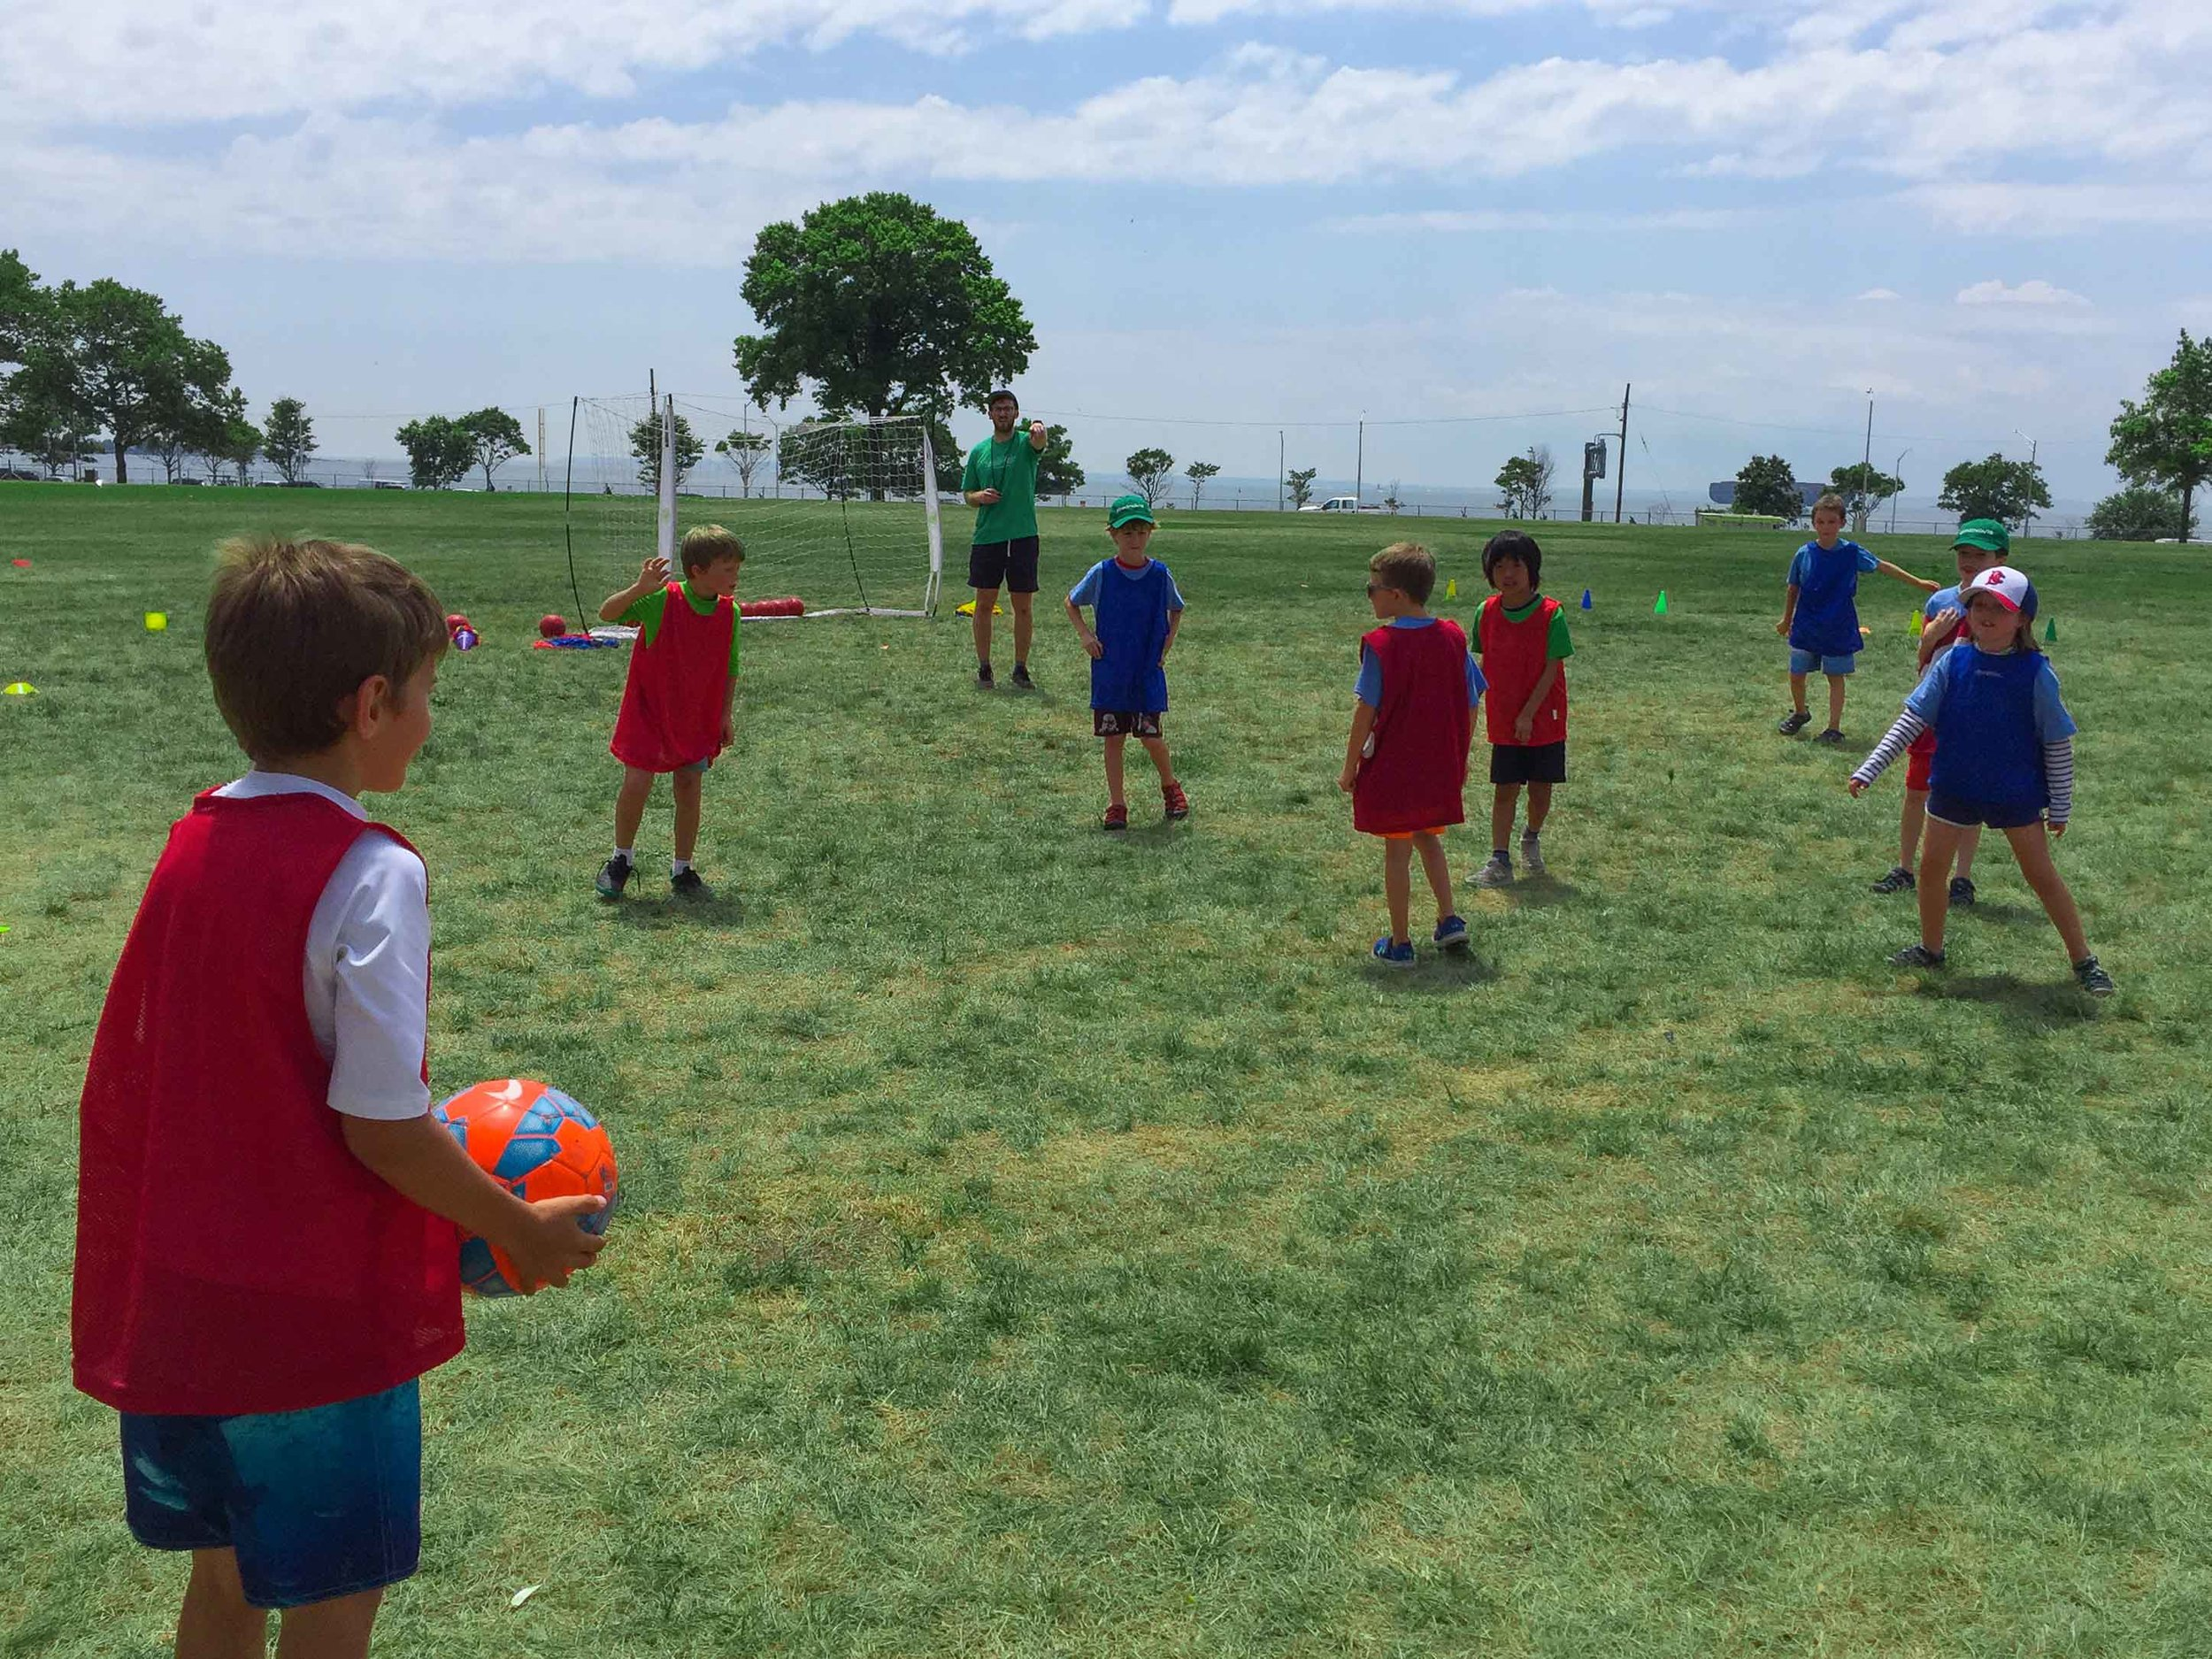 Camp Athletics - Our skilled coaches instruct campers in weekly soccer, as well as a diverse range of sports, at any level. While we hone our skills, teamwork and sportsmanship are always at the forefront of what we do.